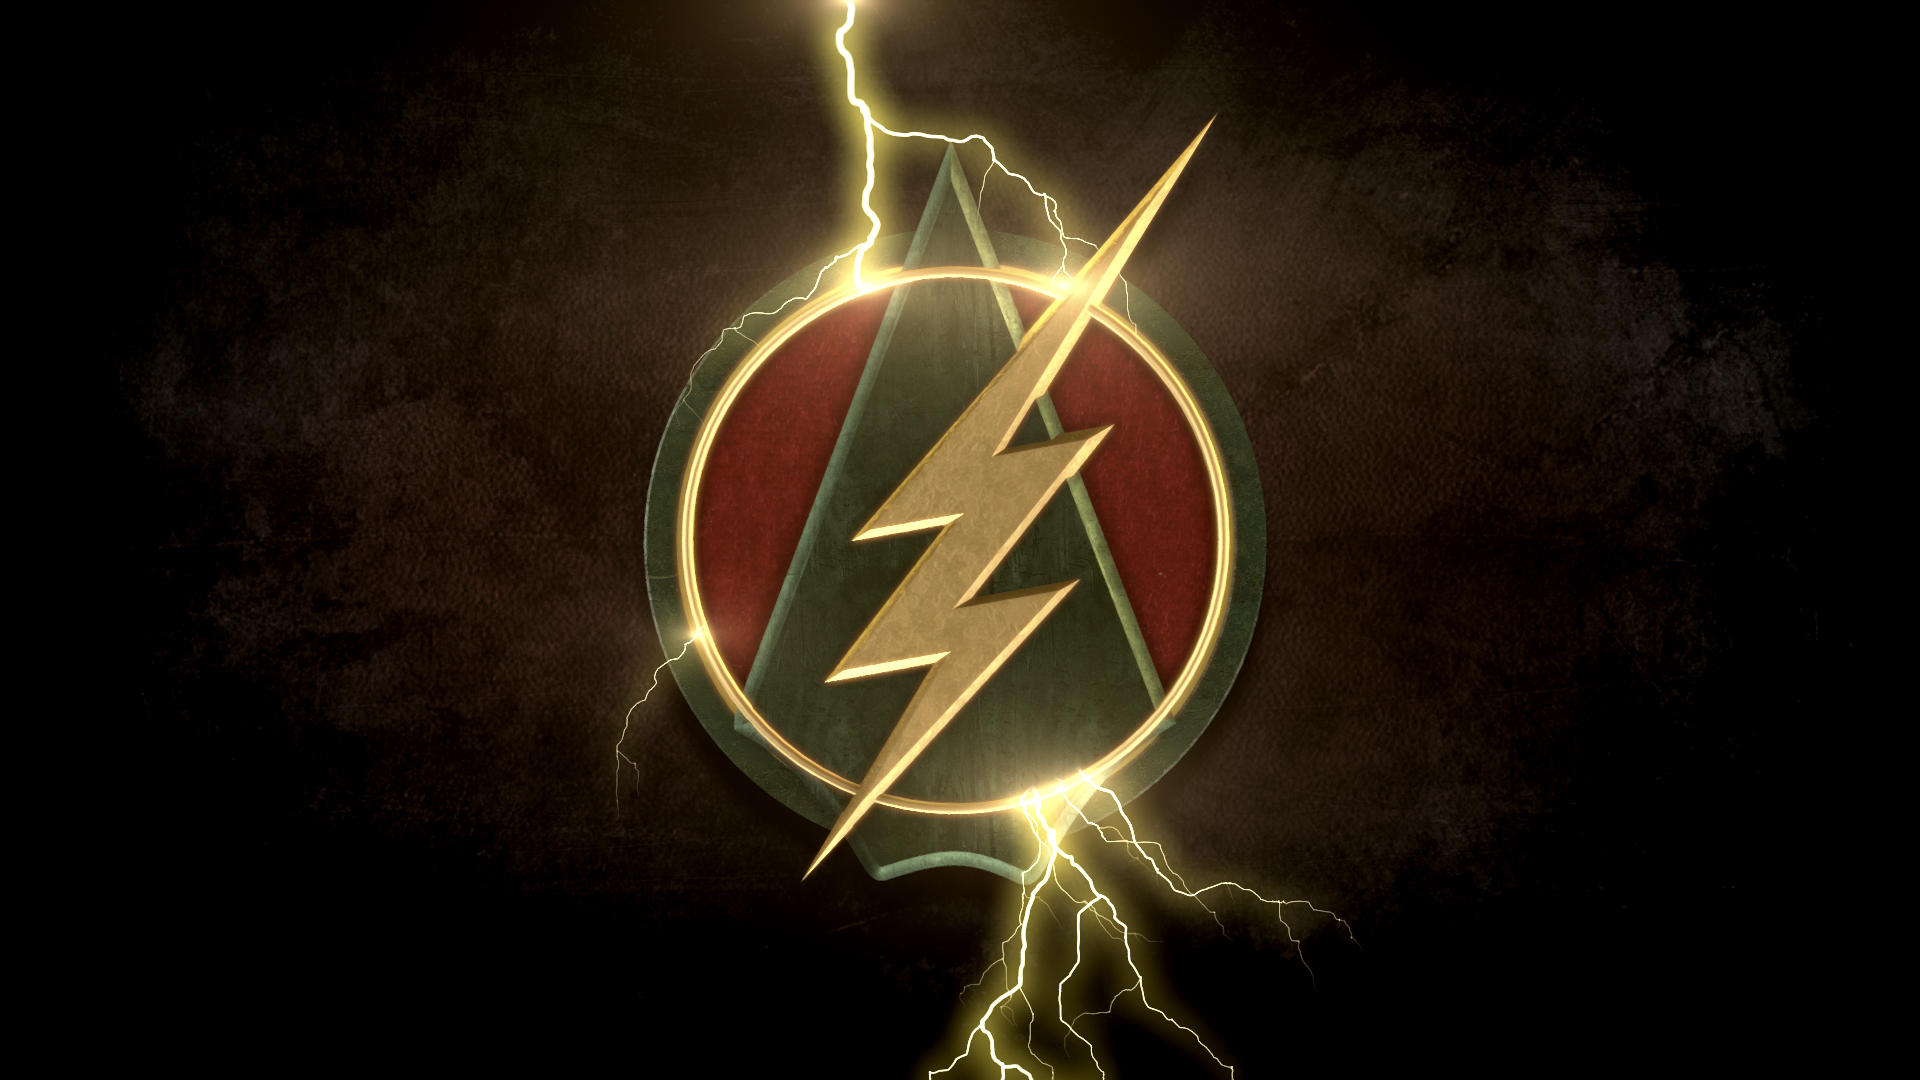 Download Flash vs Arrow HD Desktop Wallpapers We provide the best 1920x1080